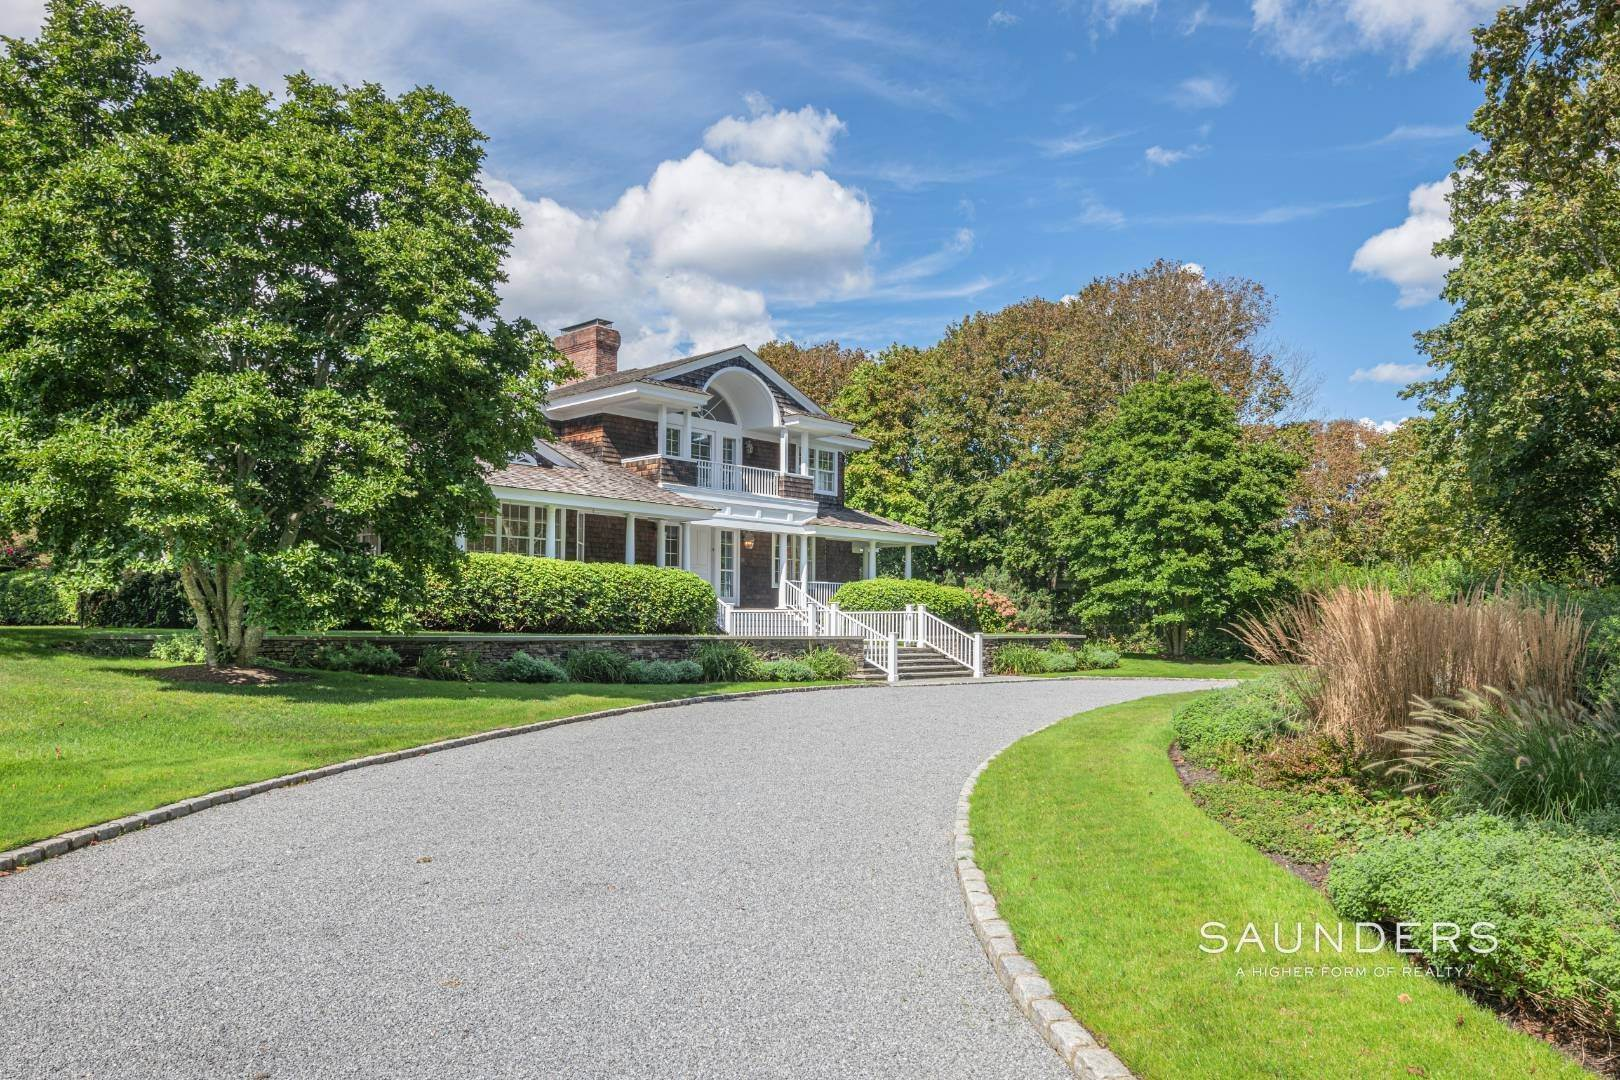 Single Family Homes for Sale at Classic Elegance In The Heart Of Quogue Village 68 Quogue Street, Quogue Village, Southampton Town, NY 11959